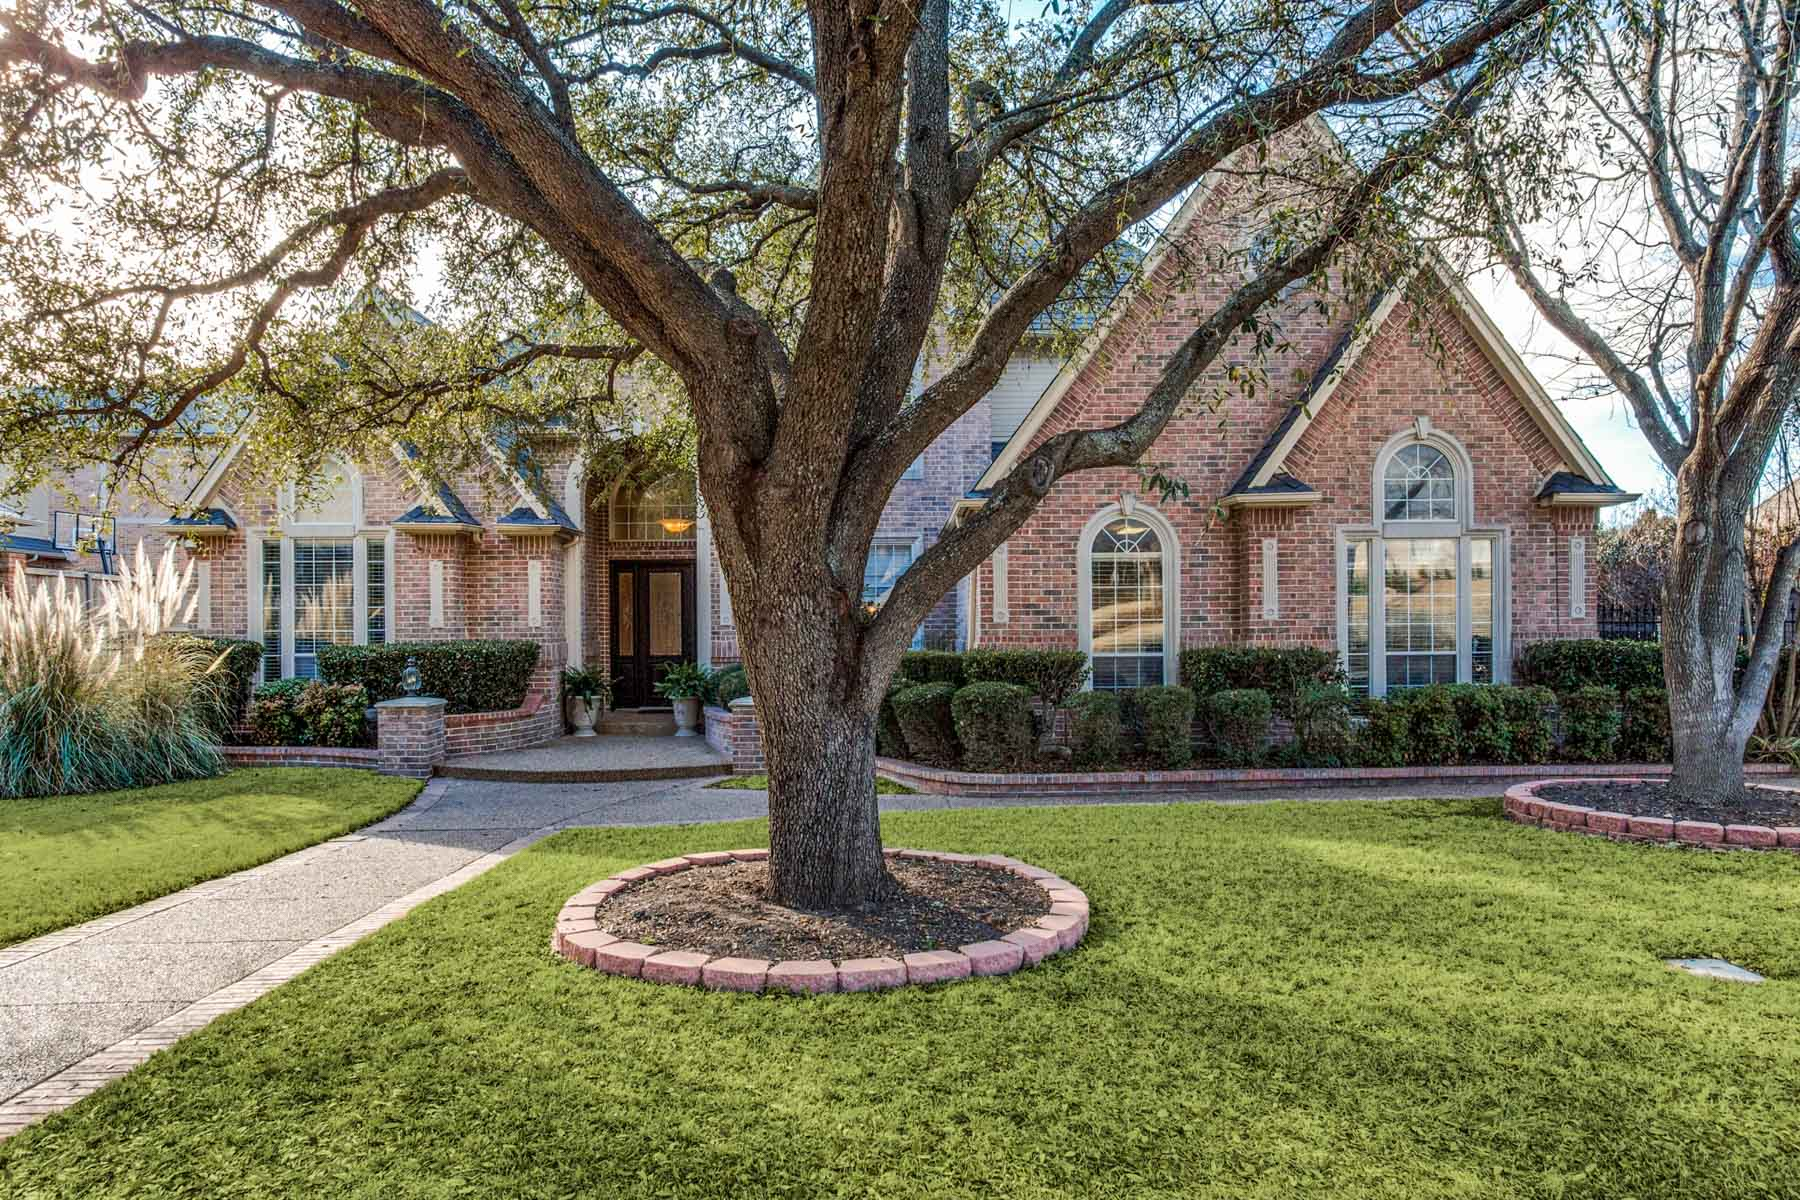 Single Family Home for Sale at 6200 Troon Rd, Fort Worth Fort Worth, Texas, 76132 United States